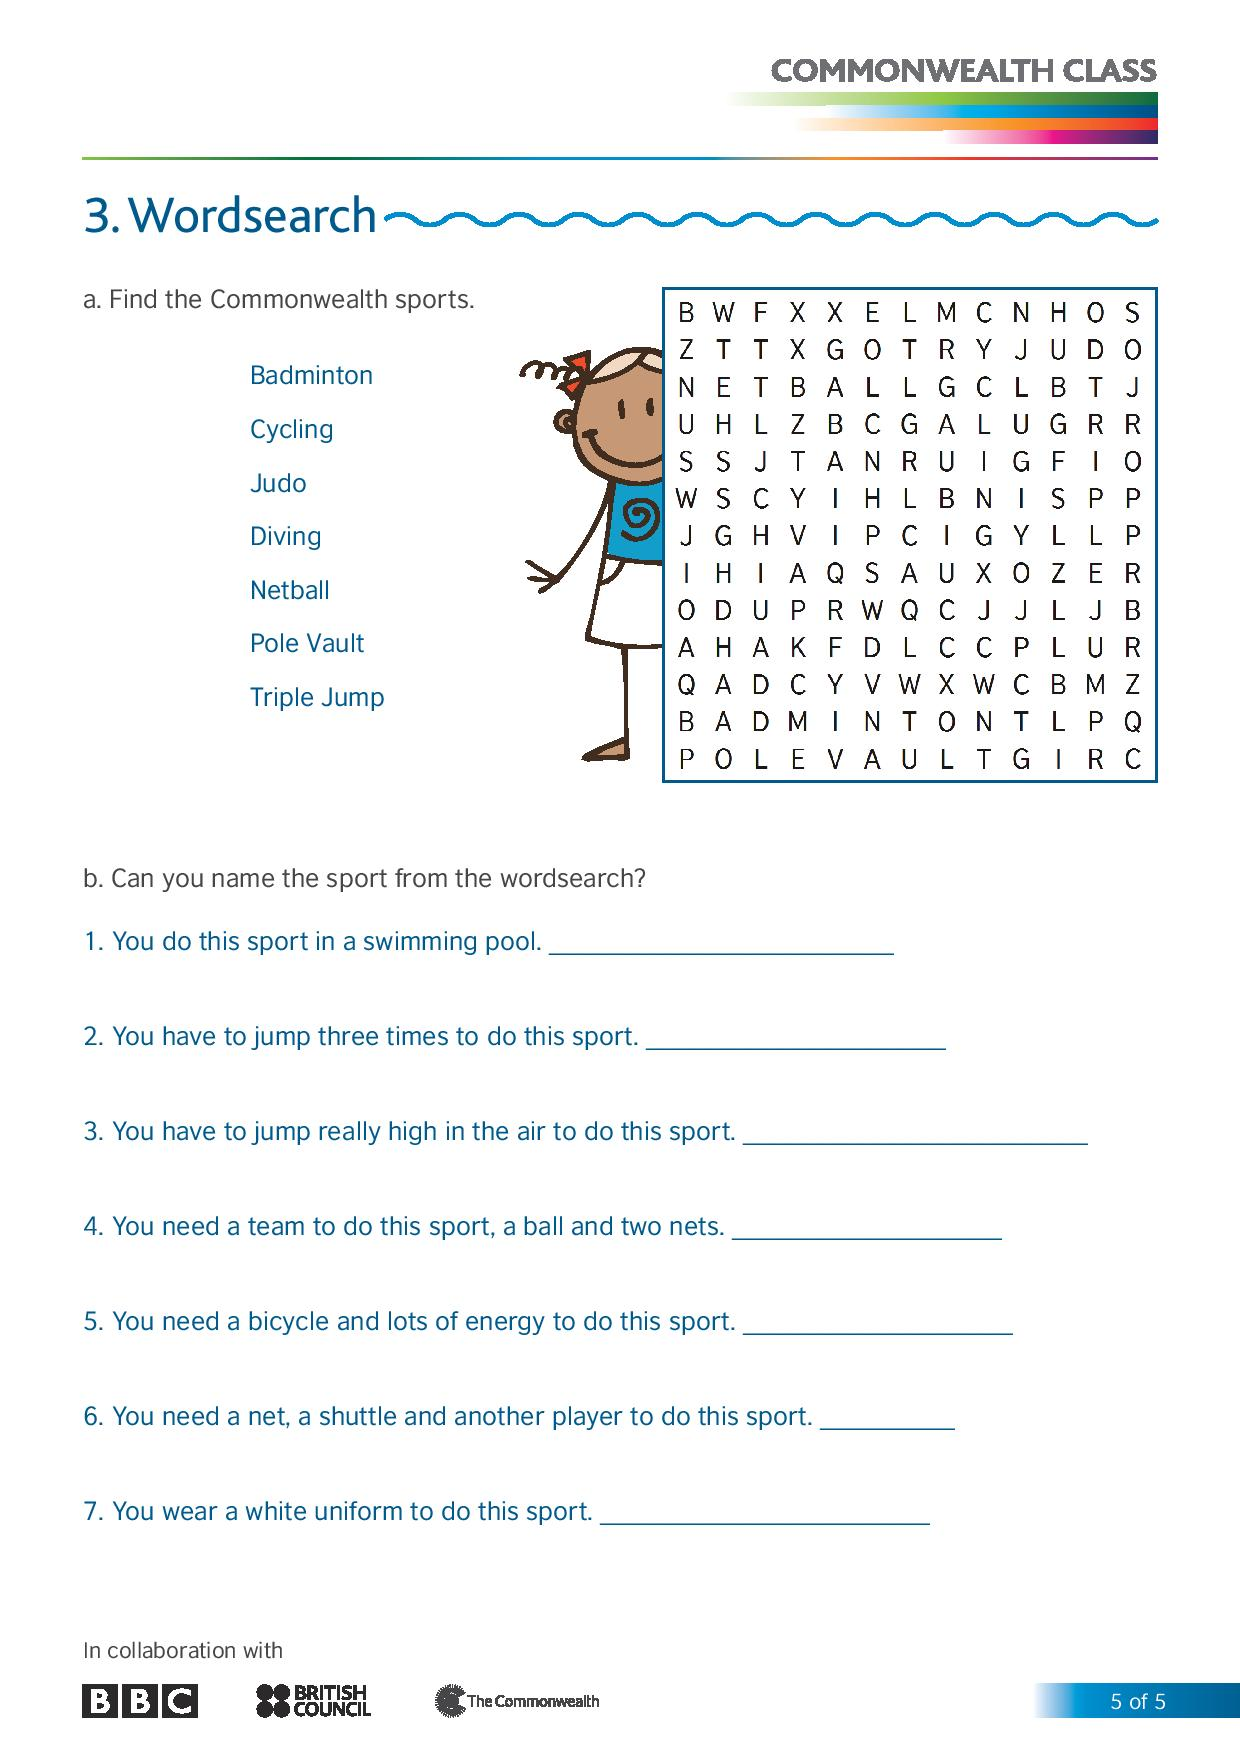 Sports At The Cw 7 10 Worksheet V4lite 0 Page 005